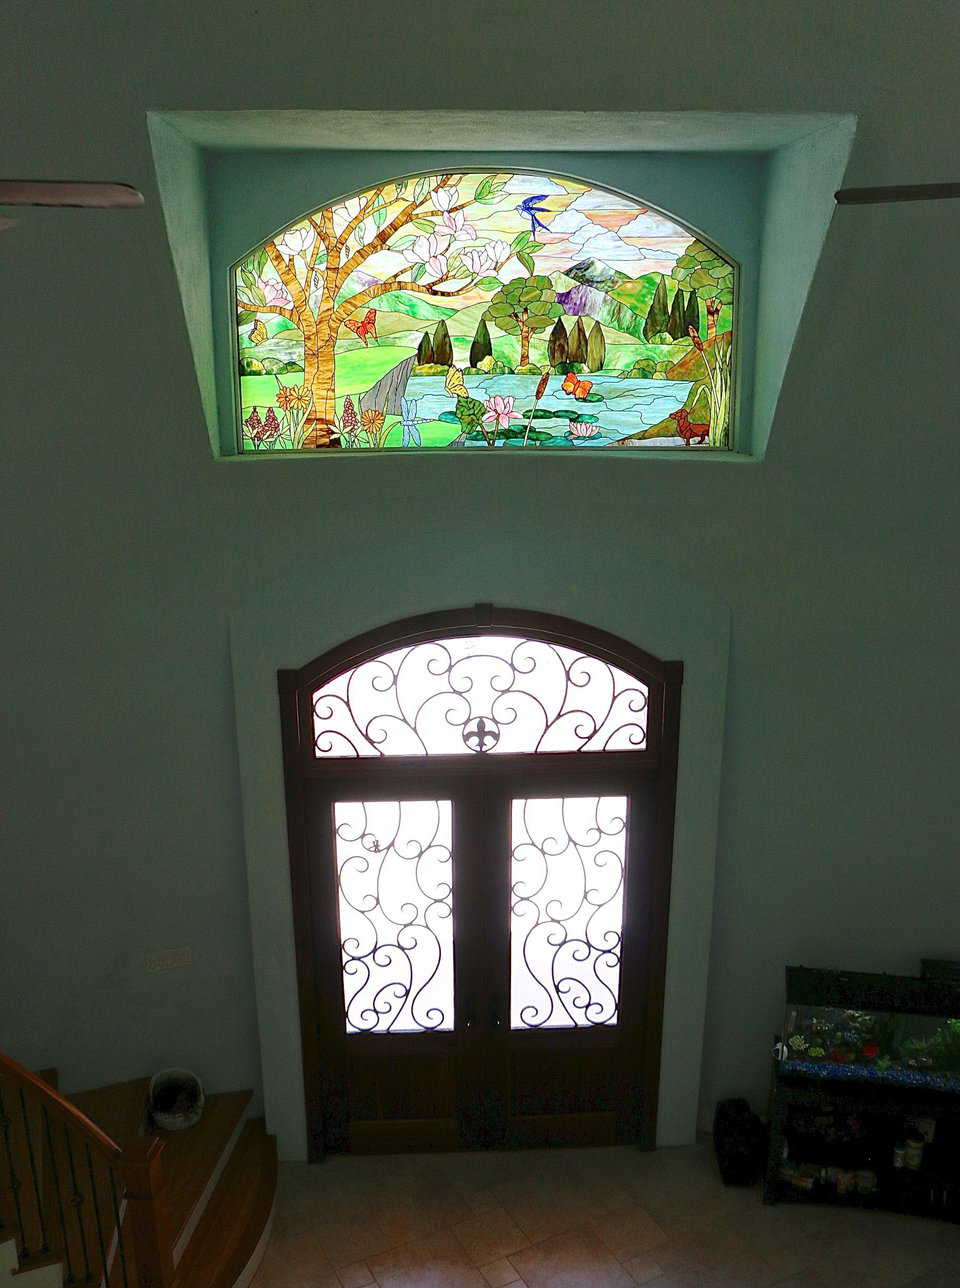 The stained glass window above the front door of the Monolithic Dome Home can be seen clearly from the second floor railing. This window was a gift from the Whiteacre's children who designed it themselves. The details in the design have special meaning to the Whiteacre family.